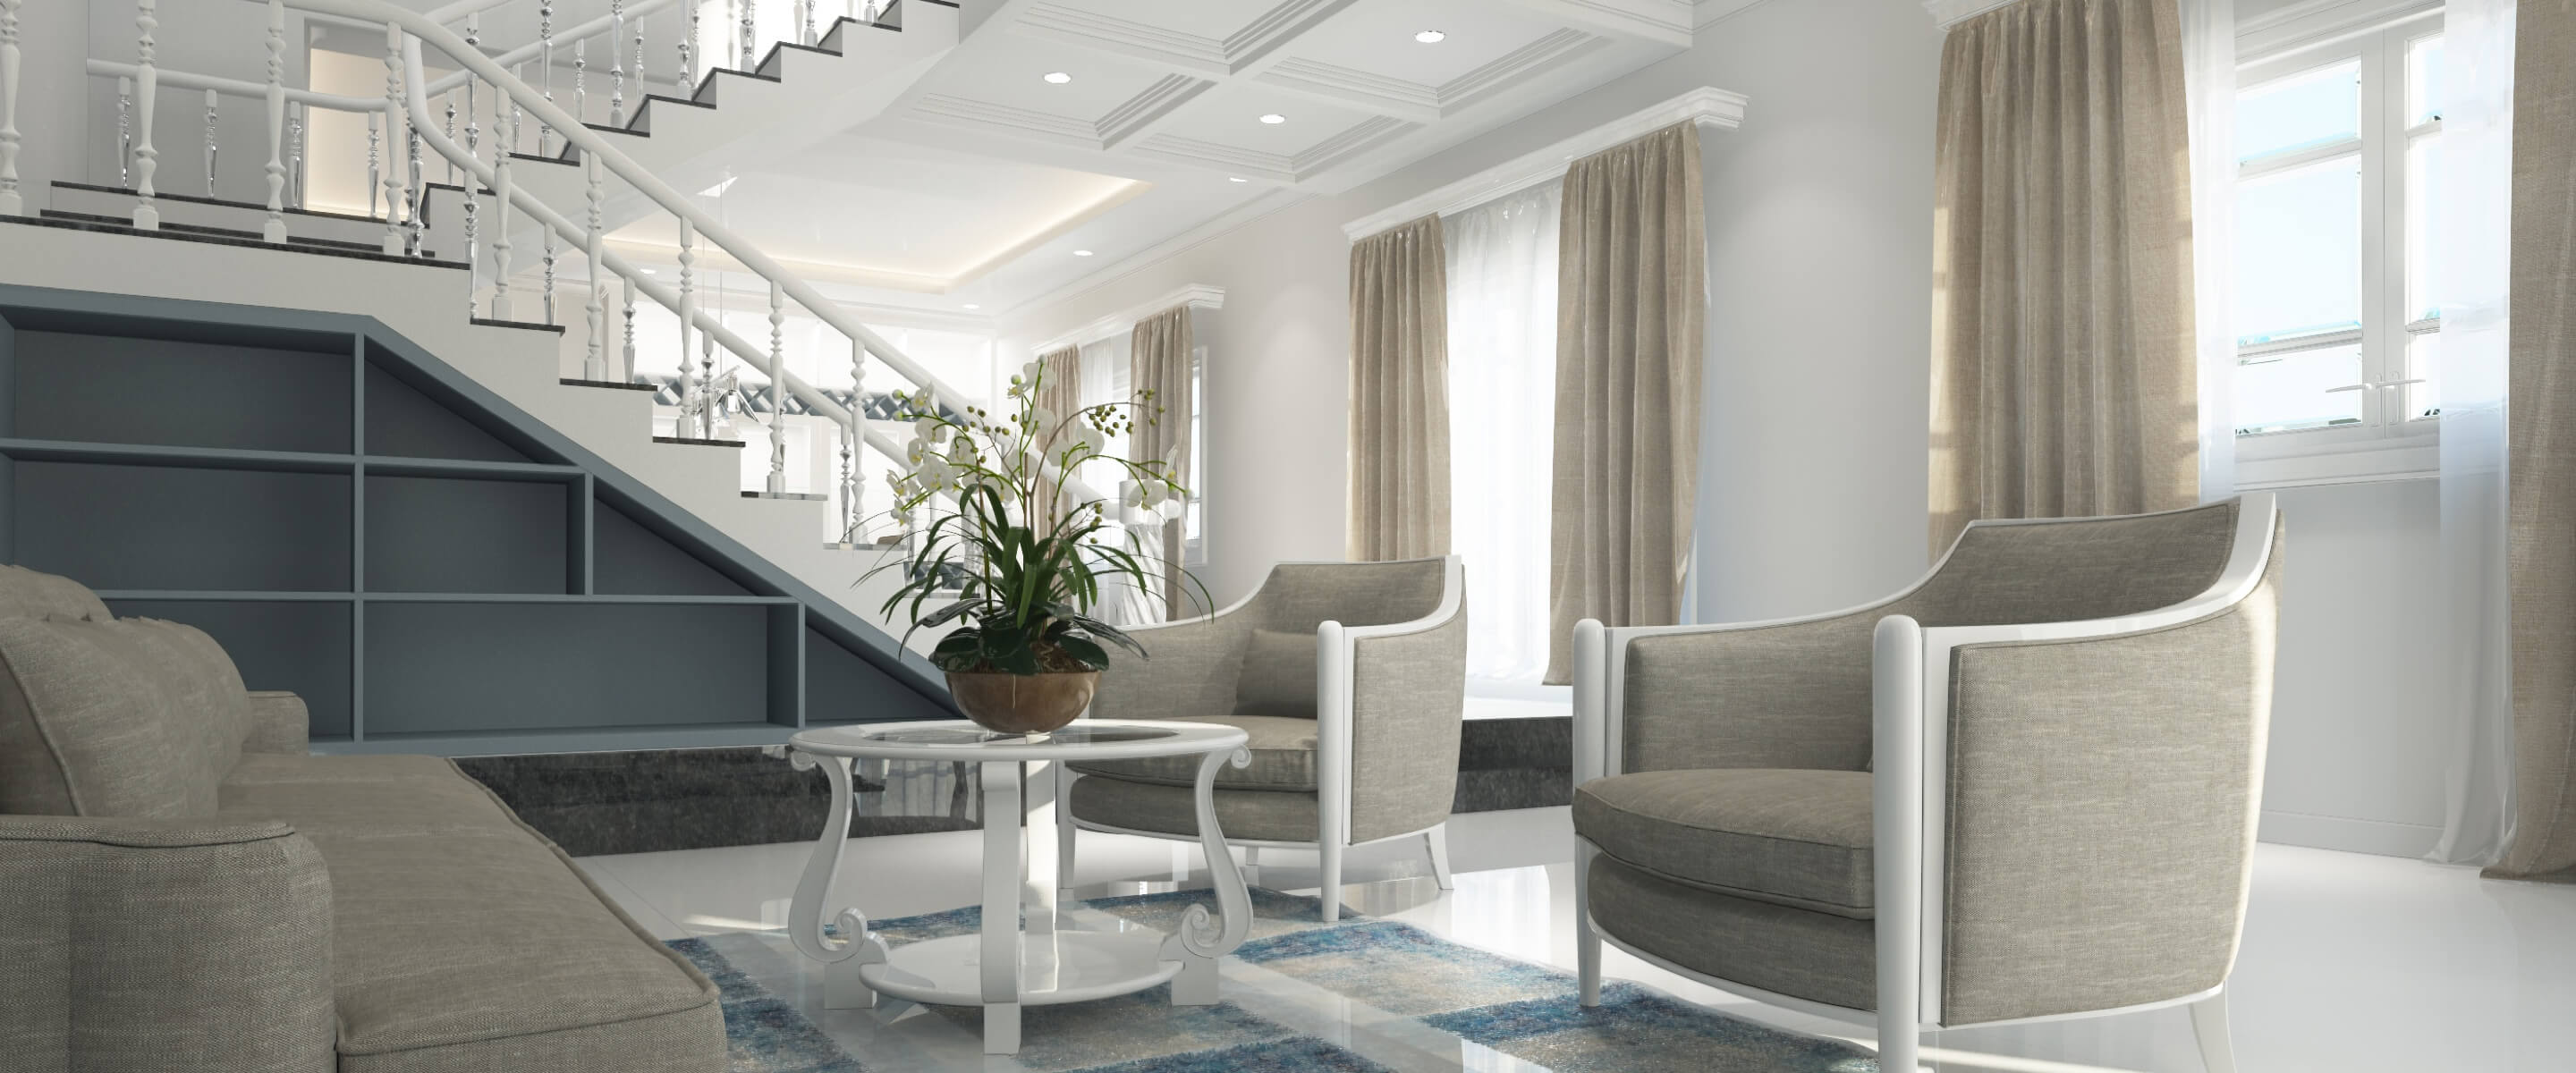 Renovating your rental property 7 design trends to avoid - Decorating trends to avoid ...